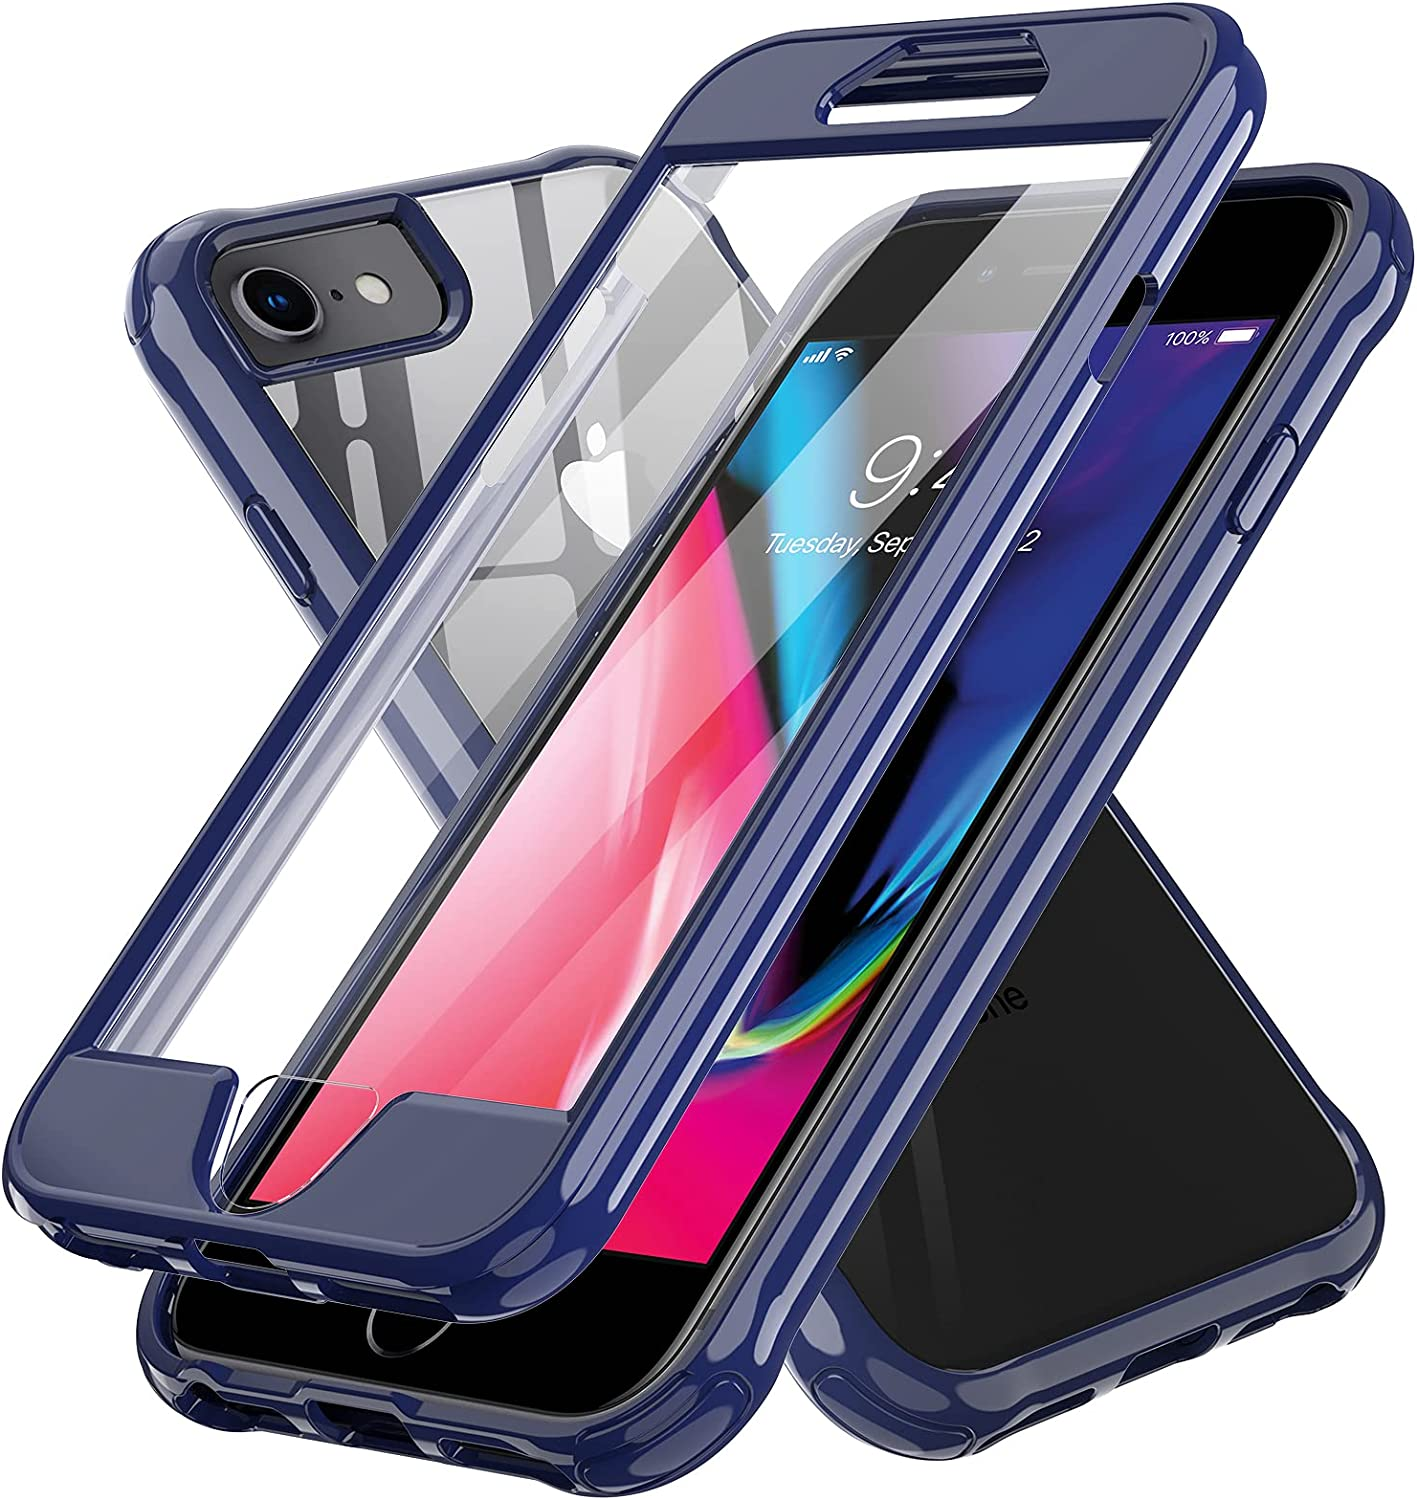 LeYi Compatible with iPhone 8 Case, iPhone SE 2020 Case, iPhone 7 Case with Built-in Screen Protector, 360 Full-Body Protective Dual Layer Shockproof Slim Clear Phone Cover Cases for iPhone 6s/6, Blue